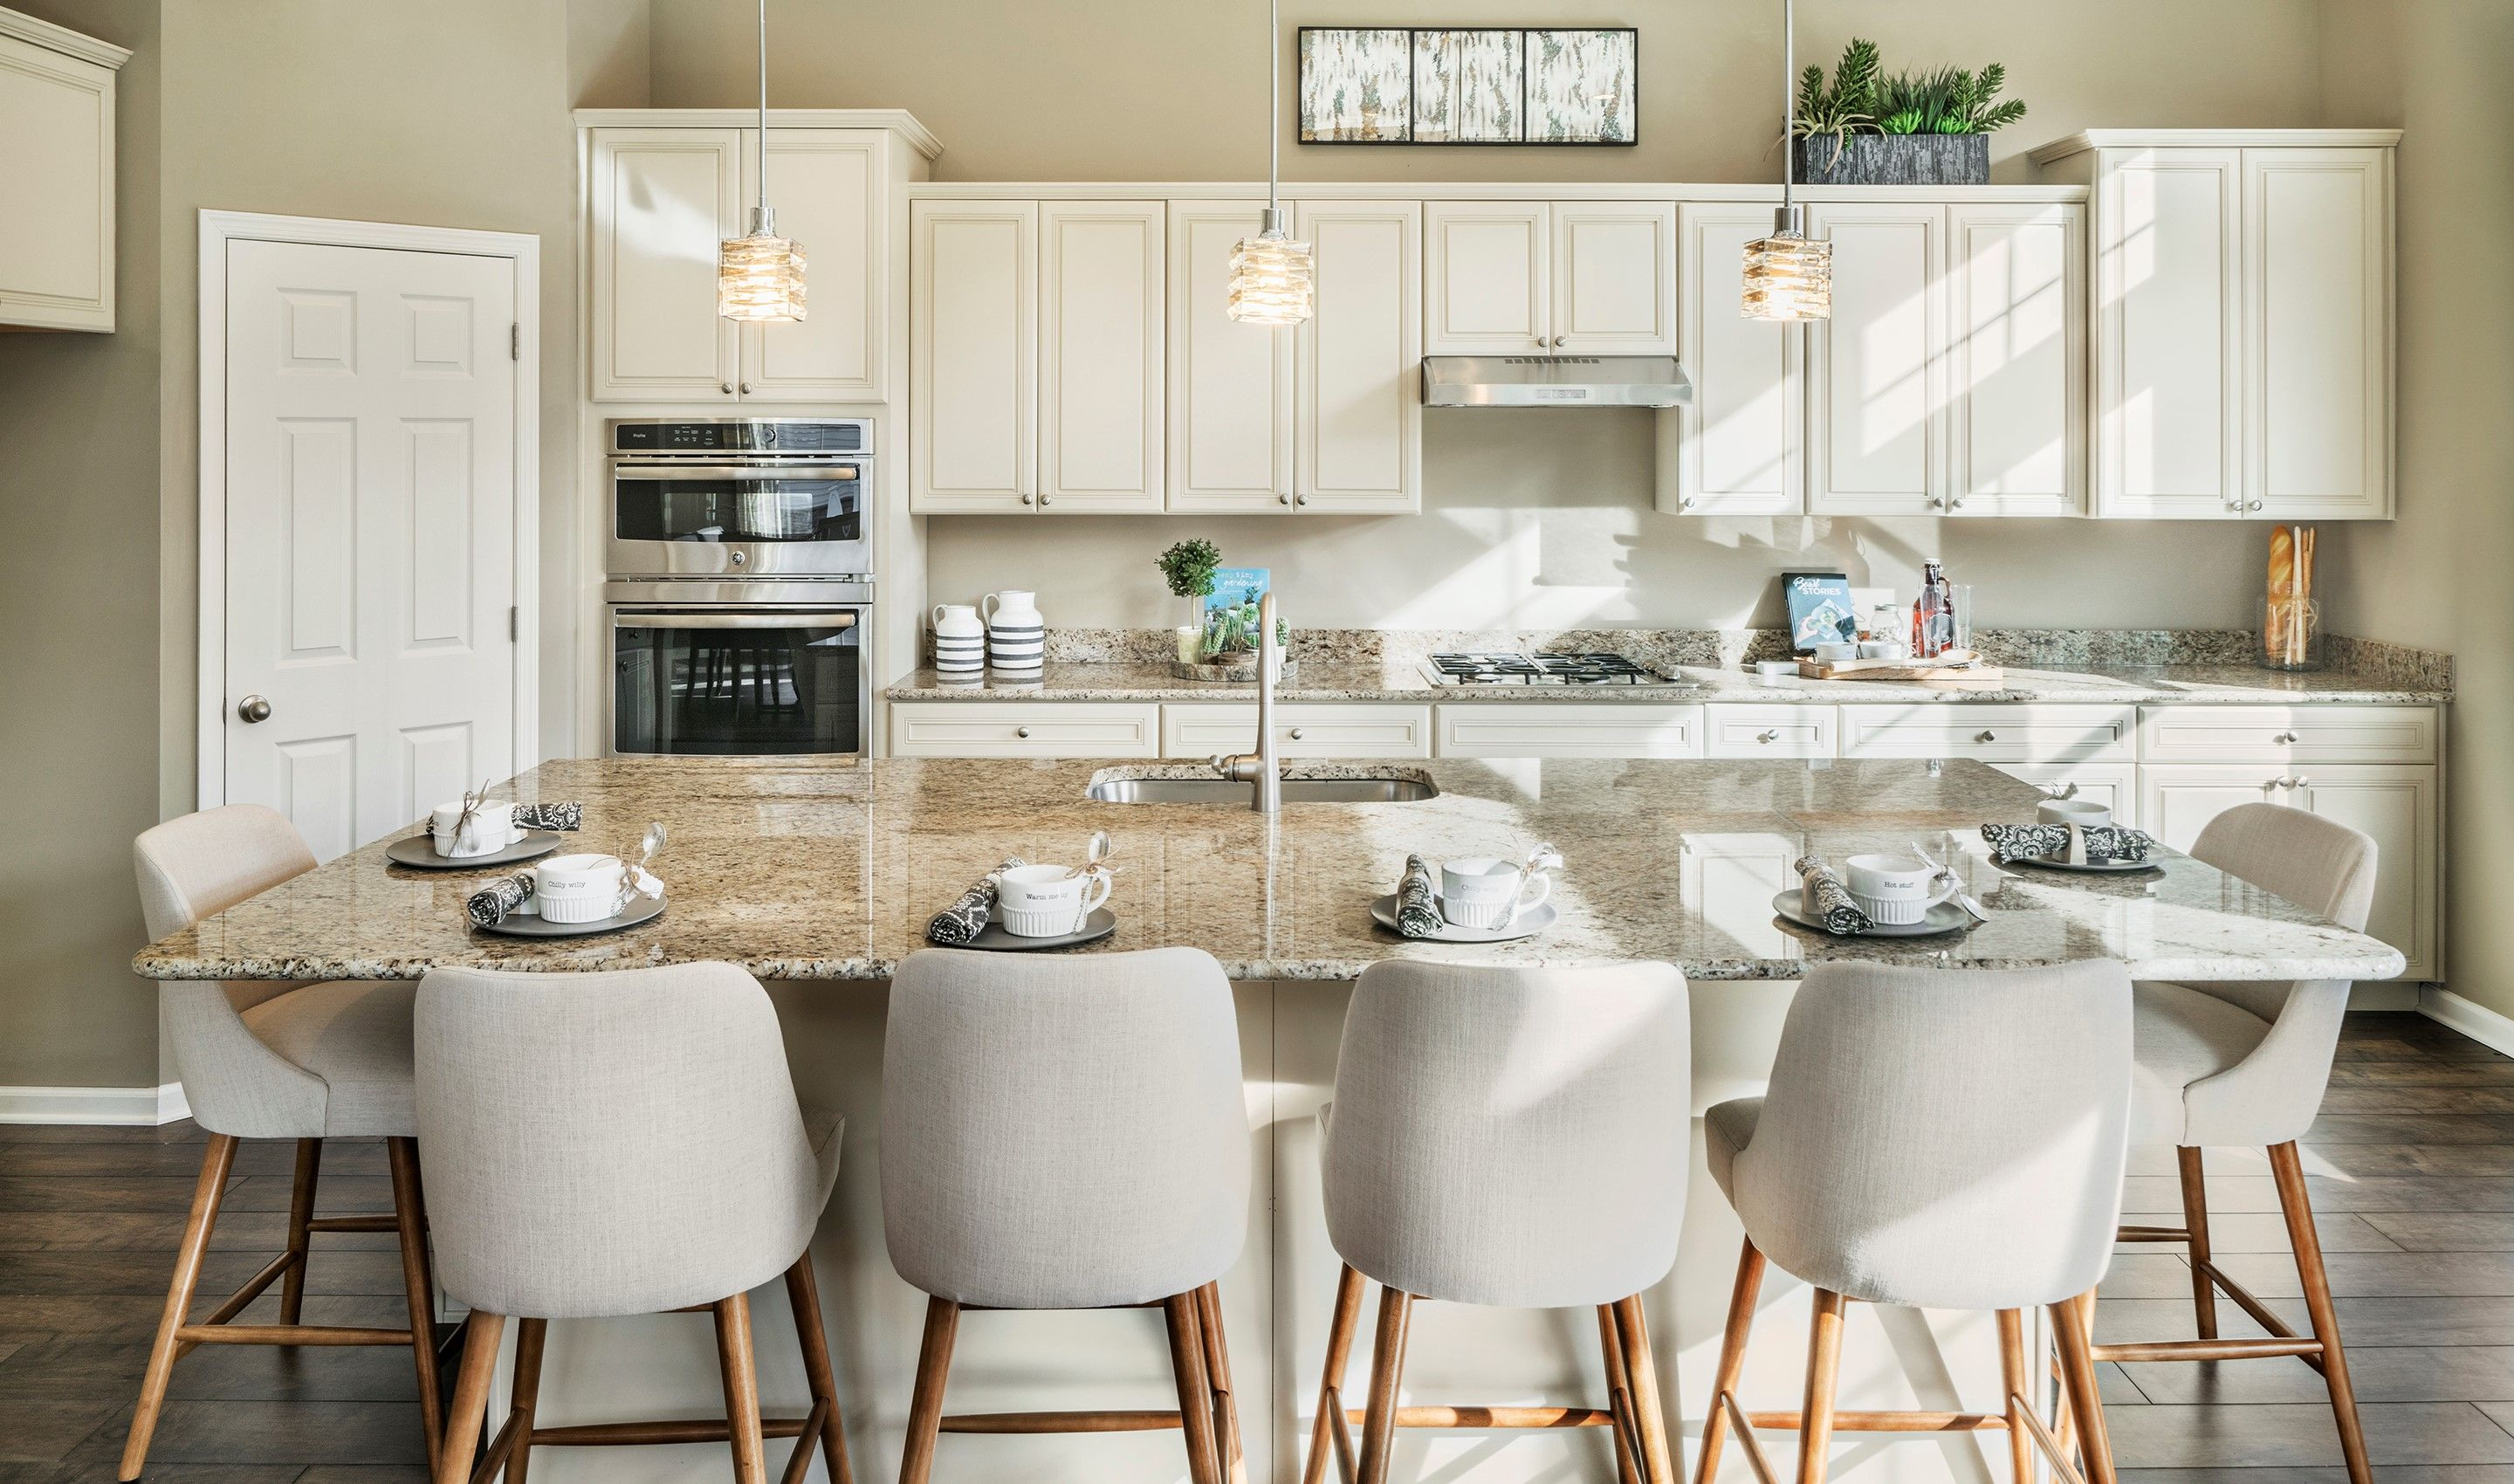 Kitchen-in-Colby-at-Four Ponds at Lincroft-in-Lincroft